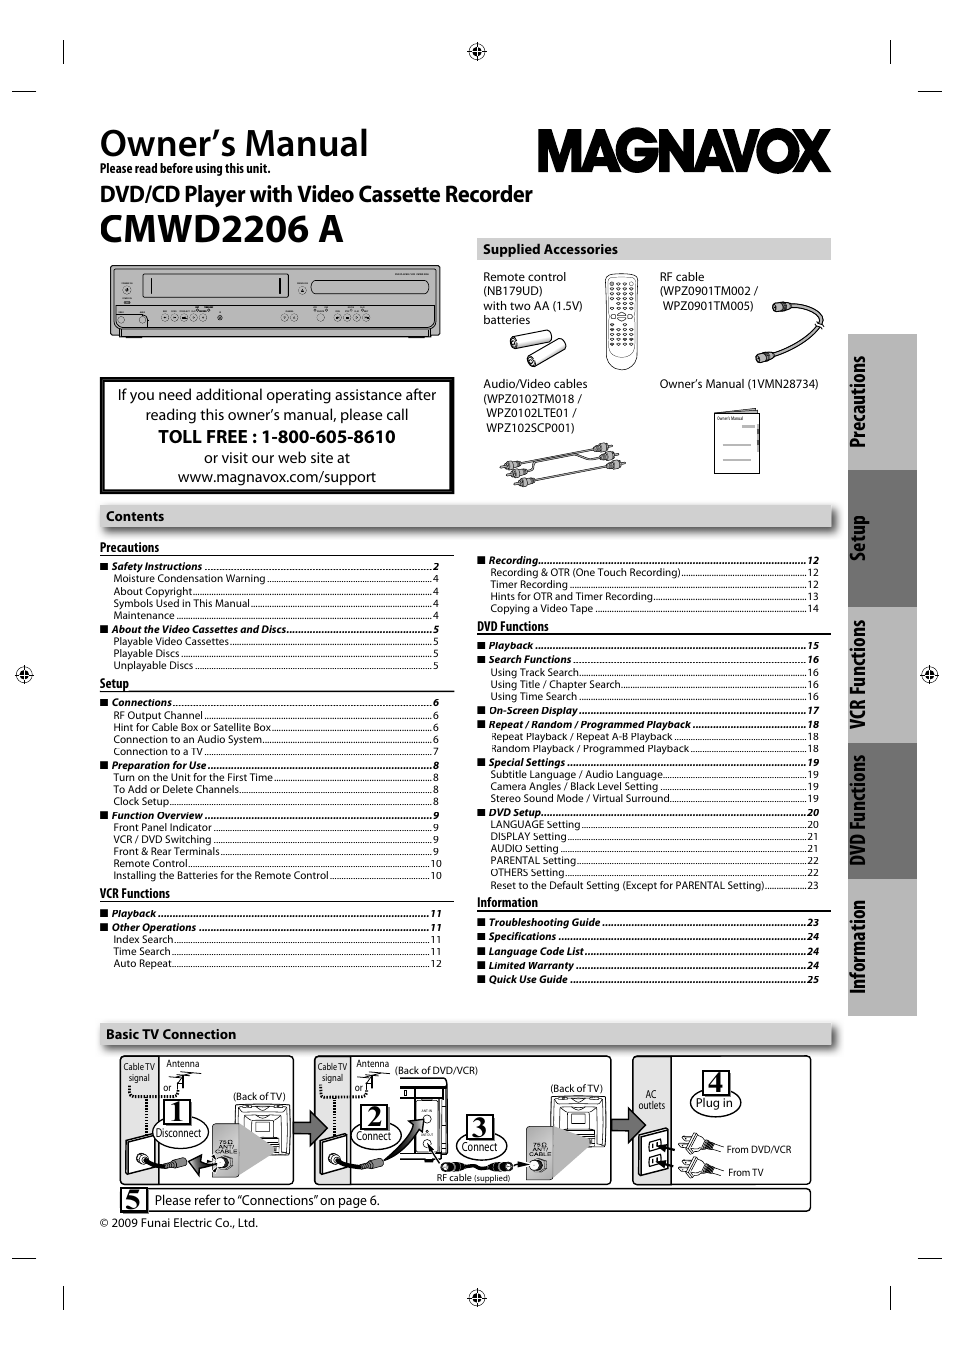 Philips Dvd Player Remote Control Manual Magnavox Vcr Wiring Diagram